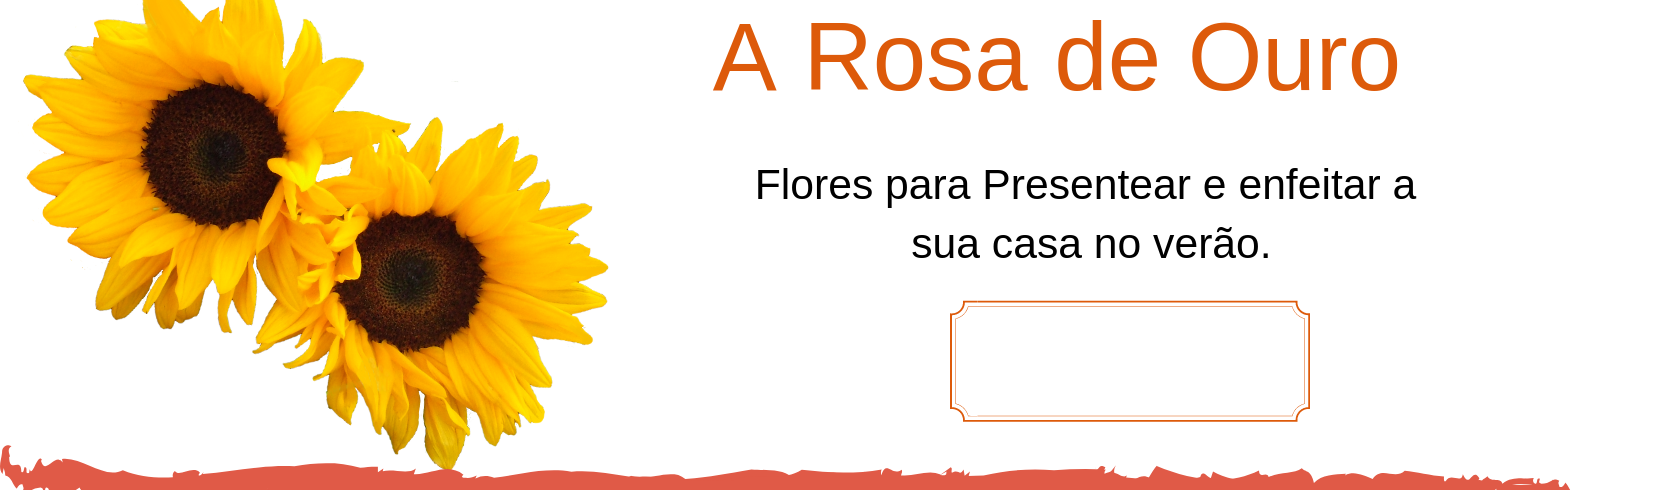 data/banners/promocao.png